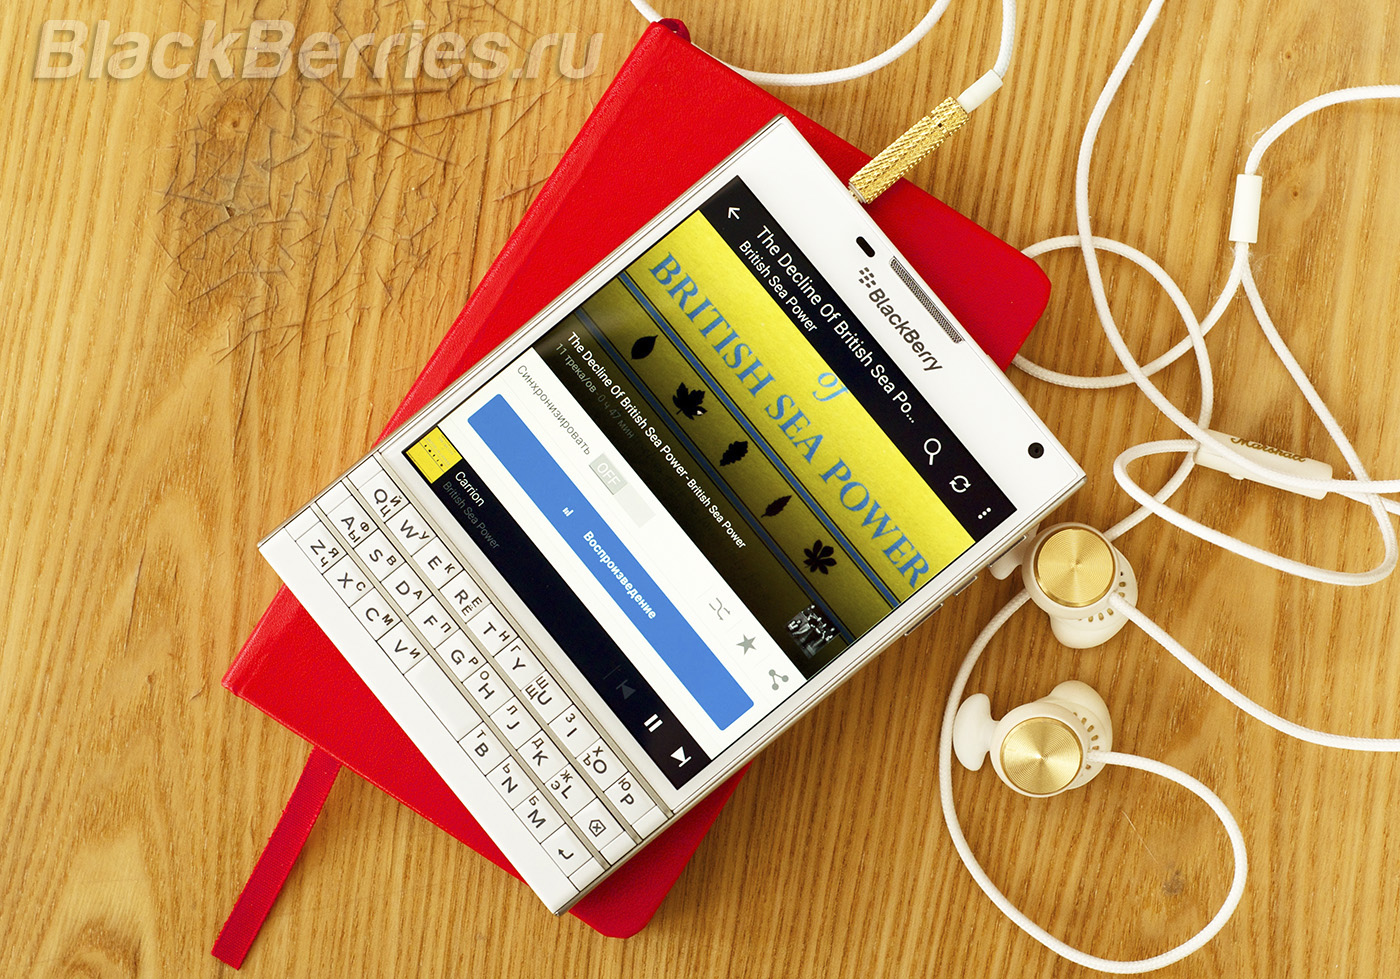 BlackBerry-Passport-Music-Apps-11